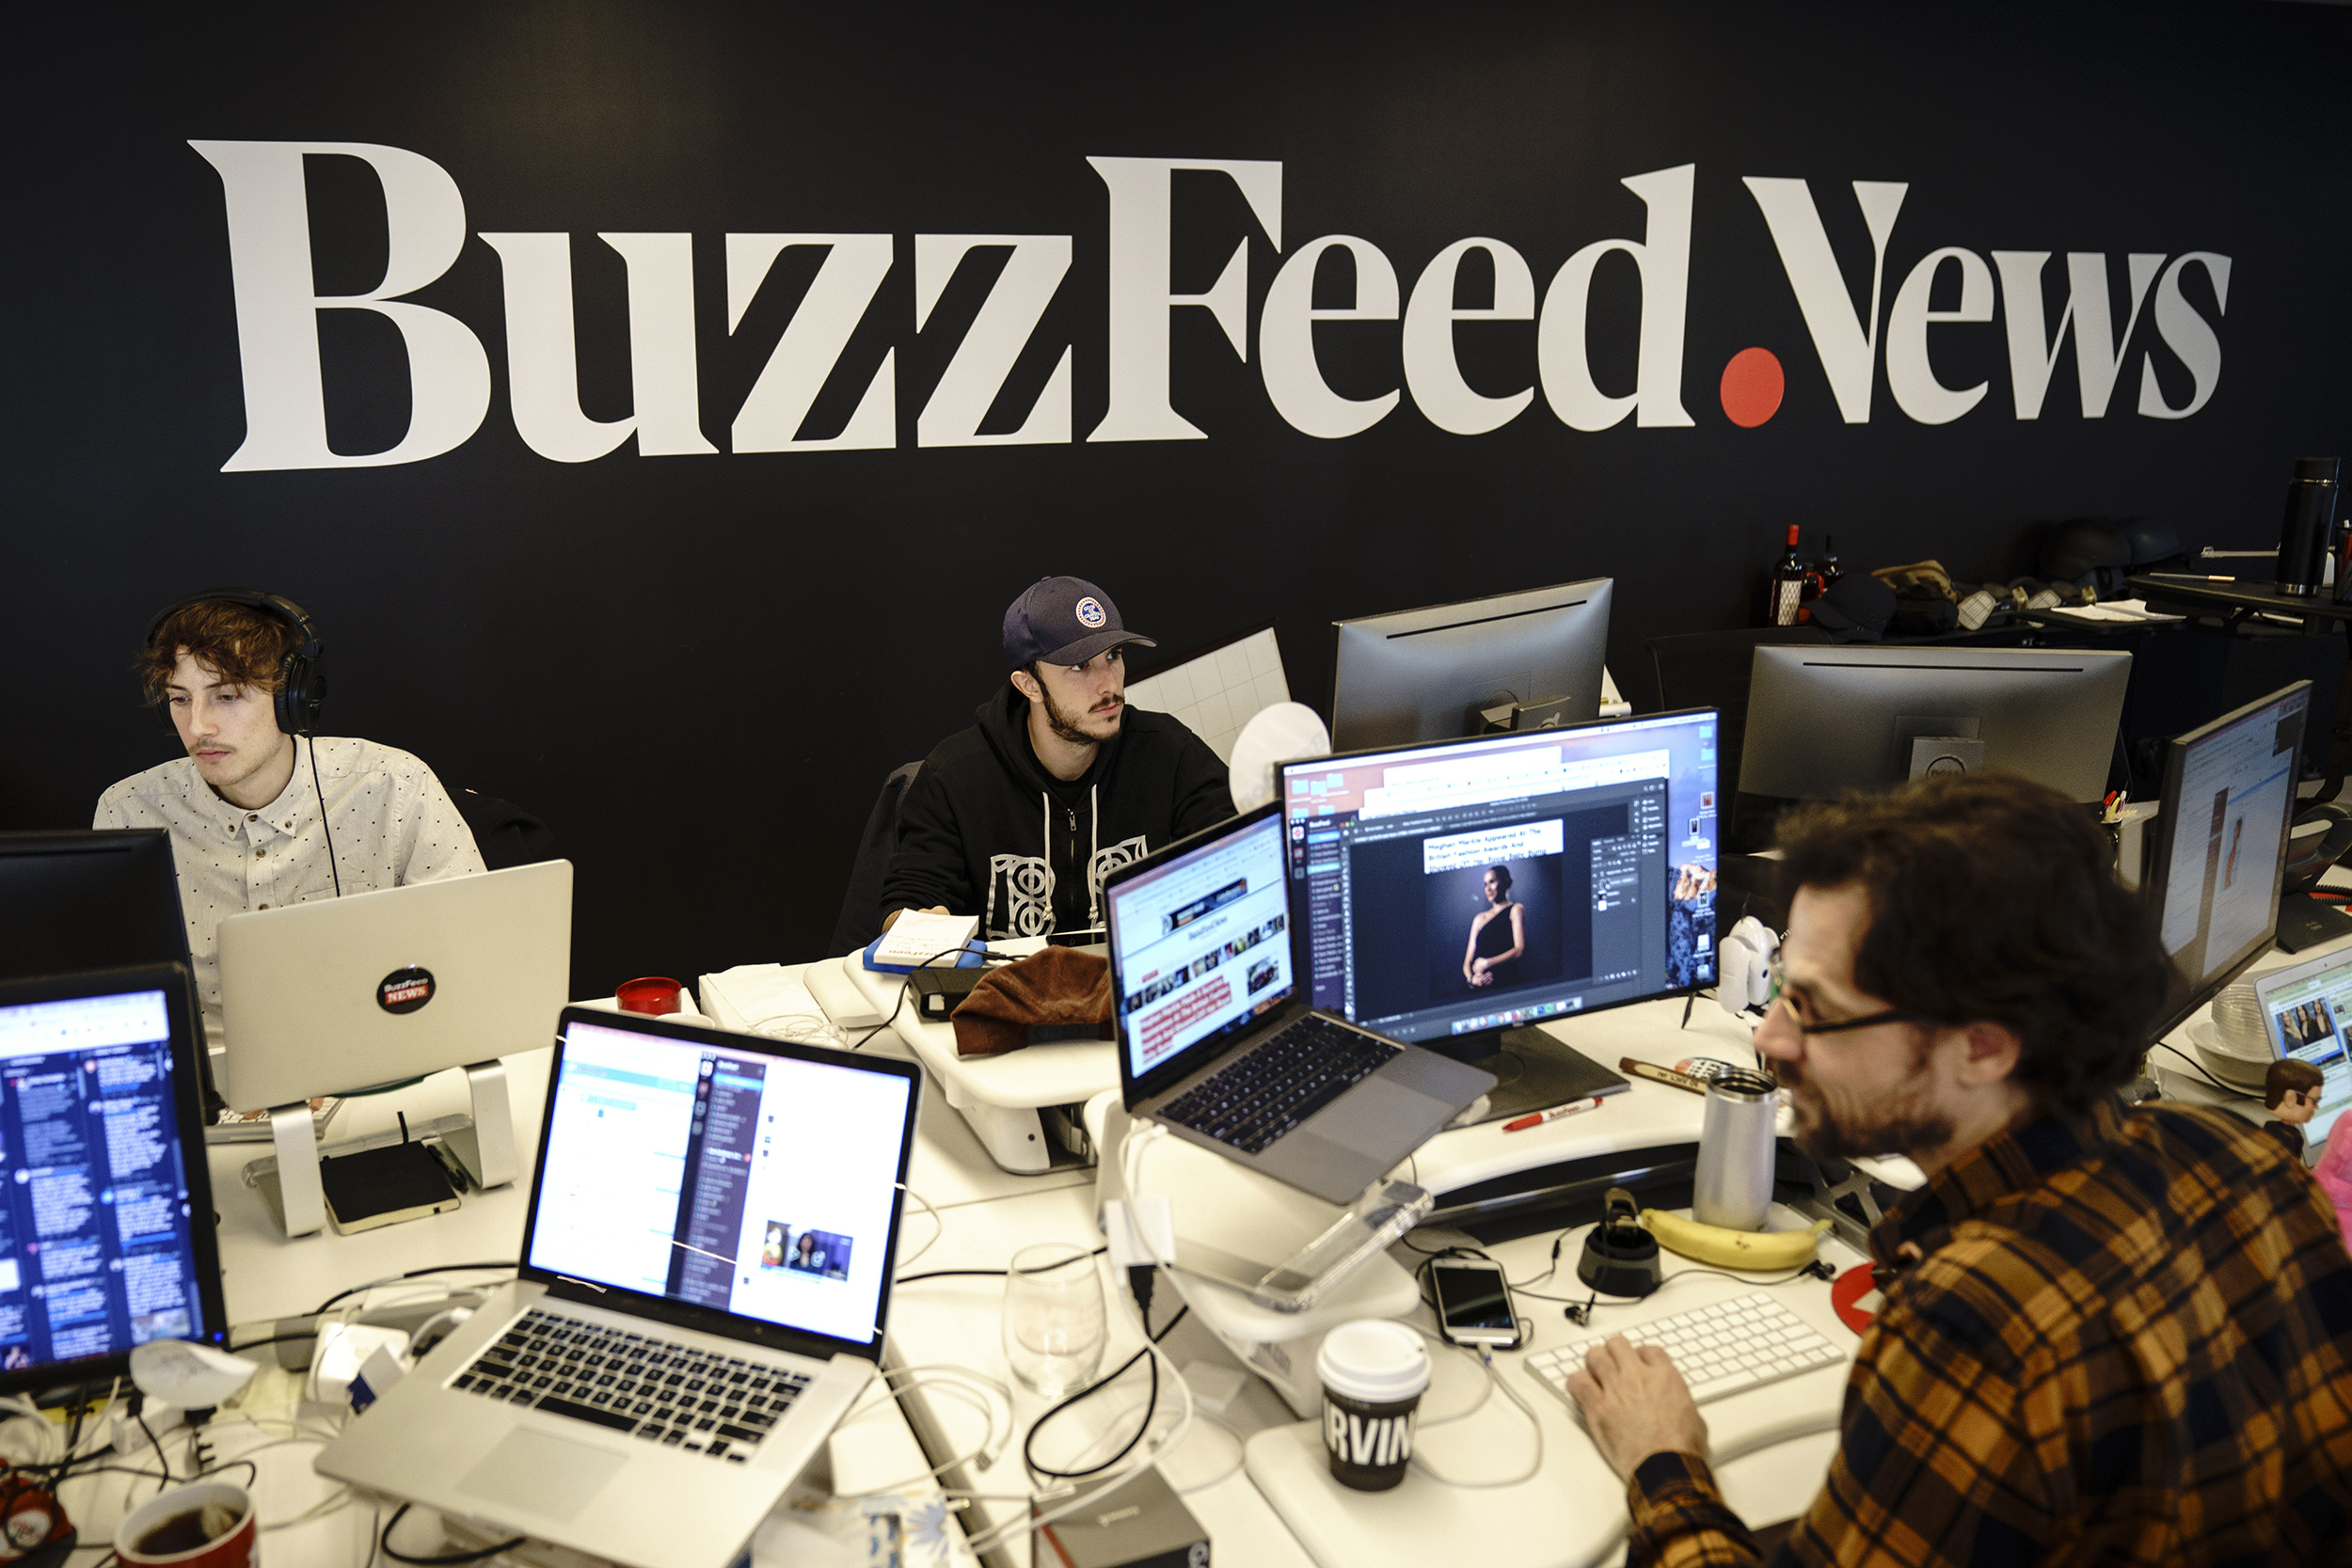 BuzzFeed to lay off up to 15 percent of its staff